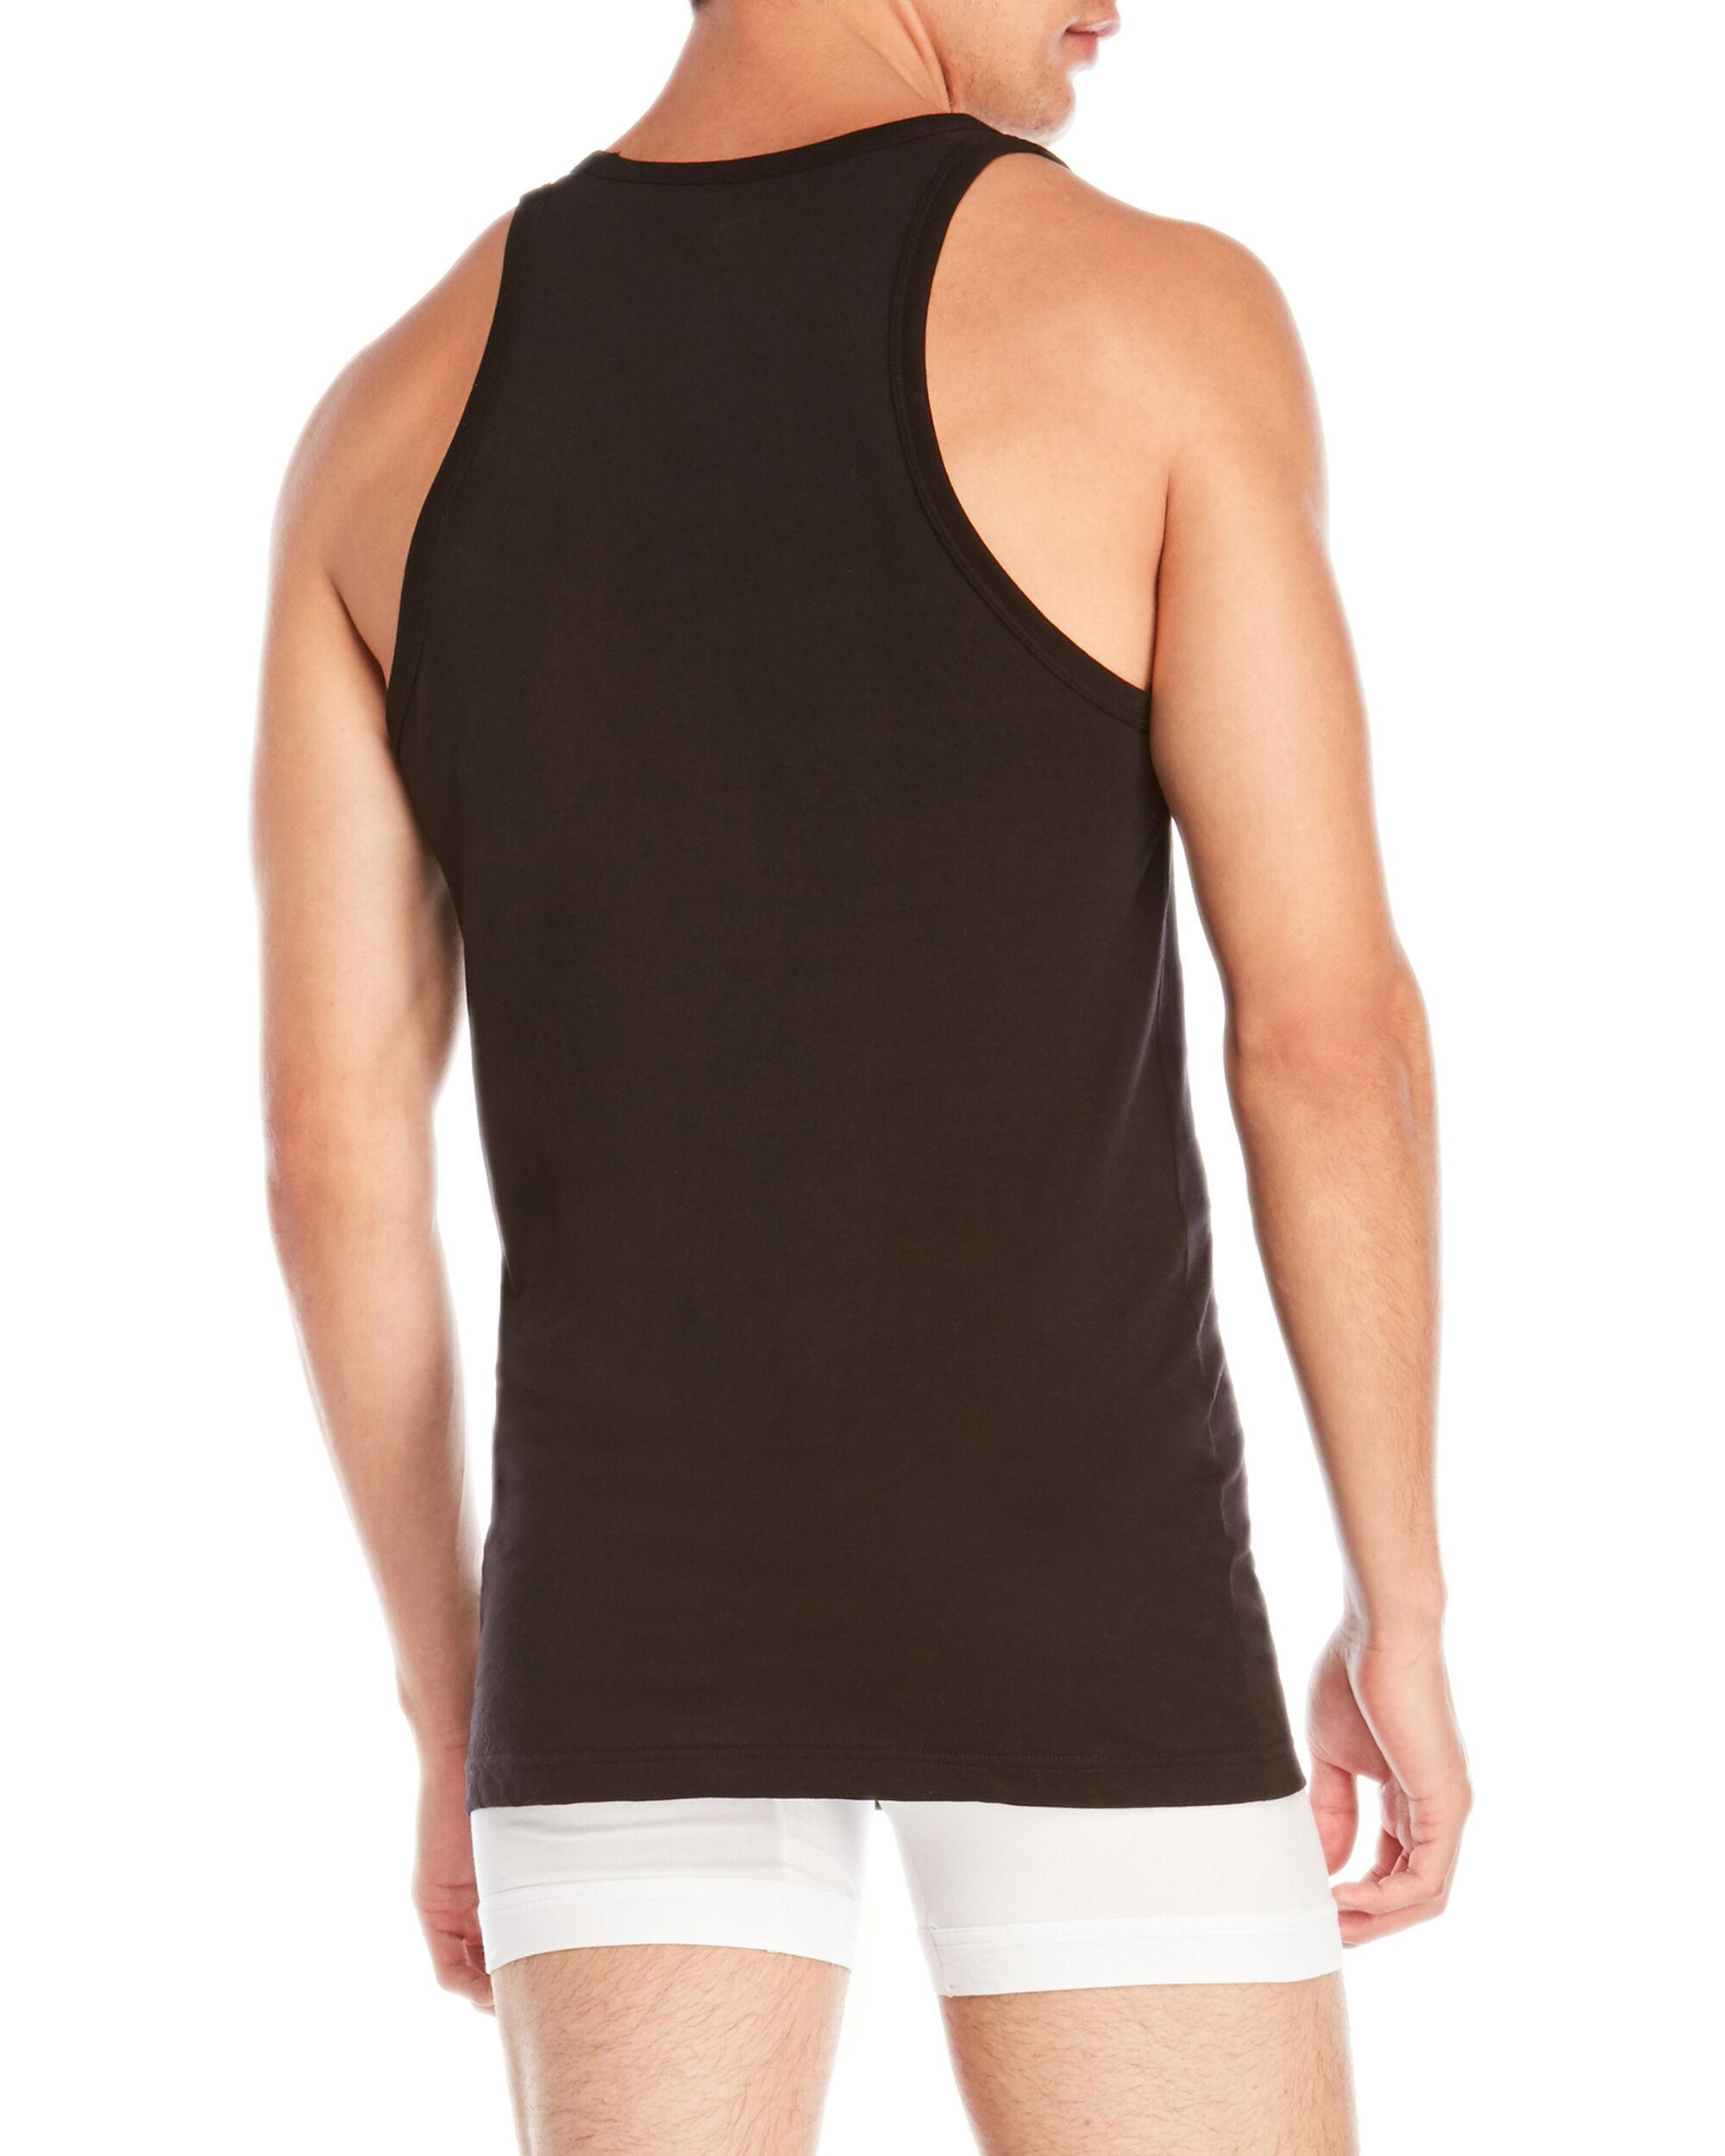 Mr.Macy Mens Bodybuilding Sport Fitness Sleeveless Tops Vest Shaperwear Tank